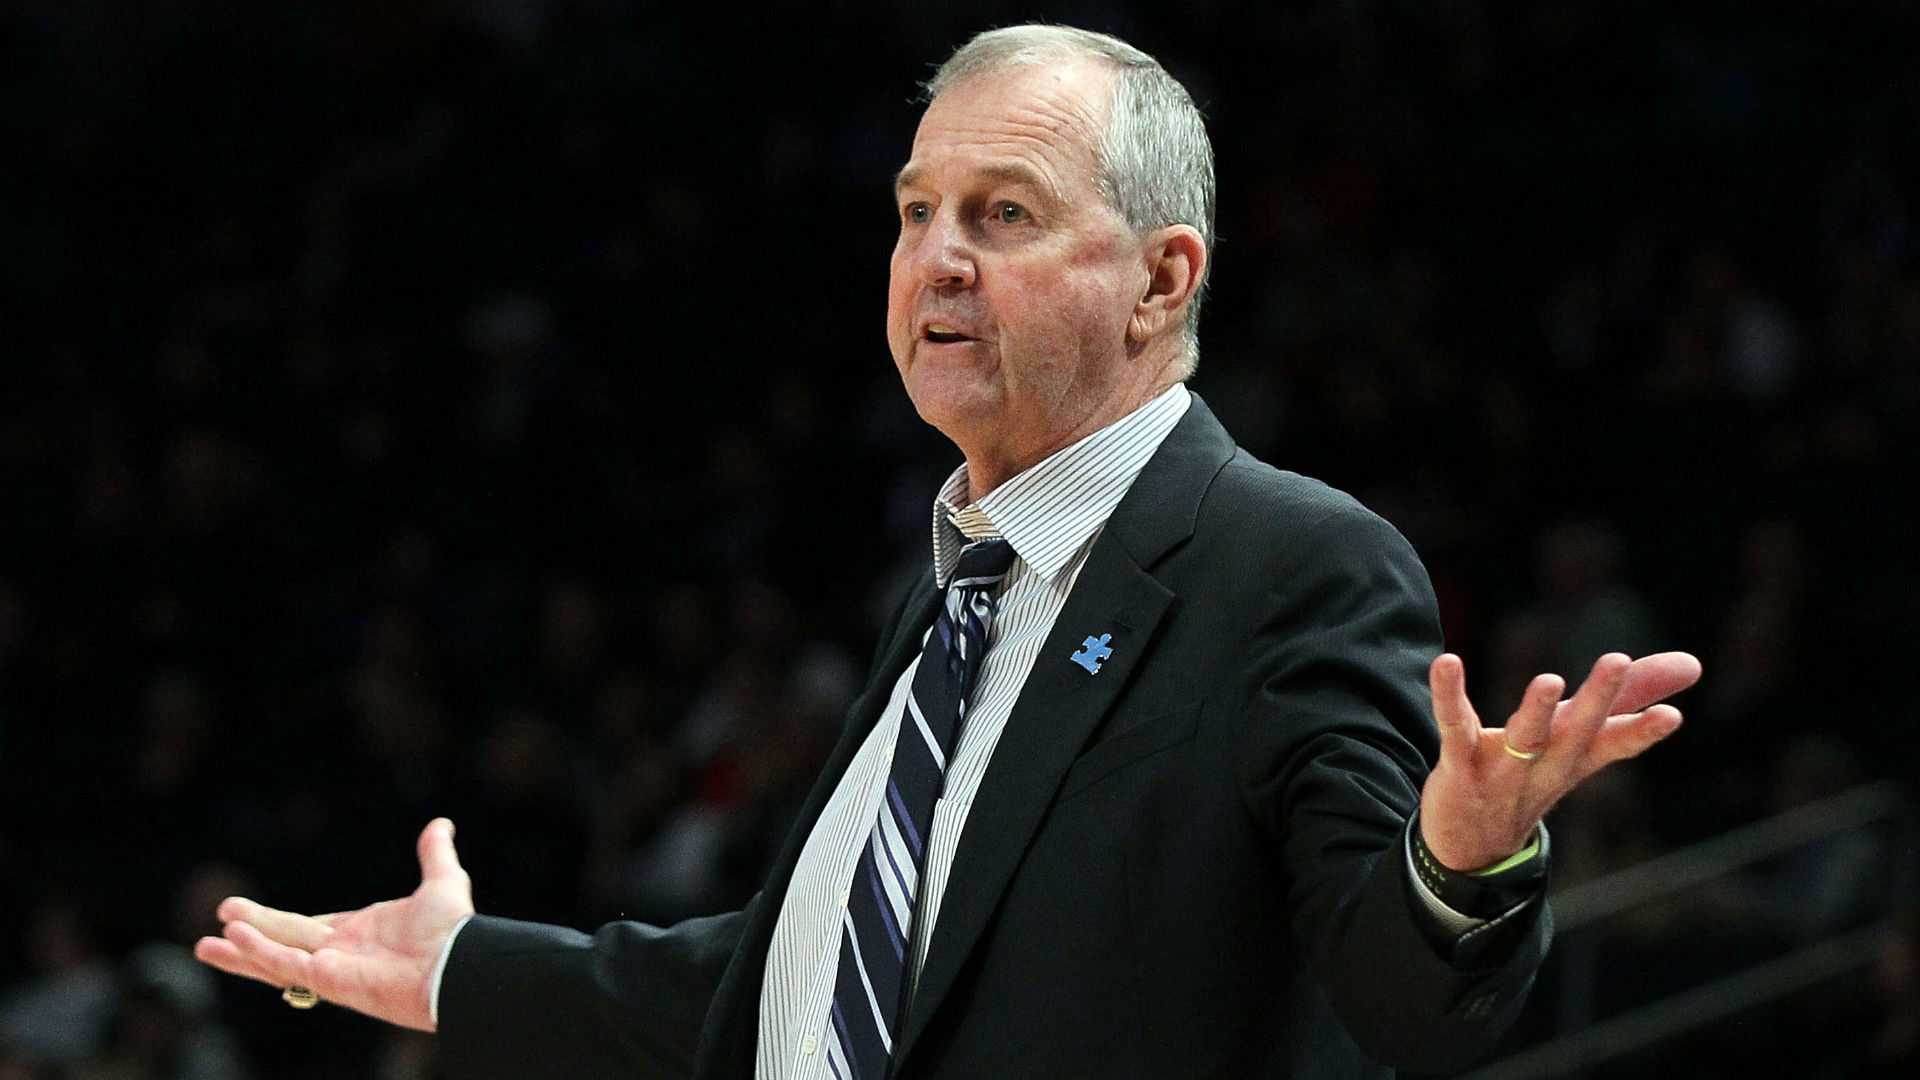 Hall of Fame coach Jim Calhoun named in sex discrimination lawsuit